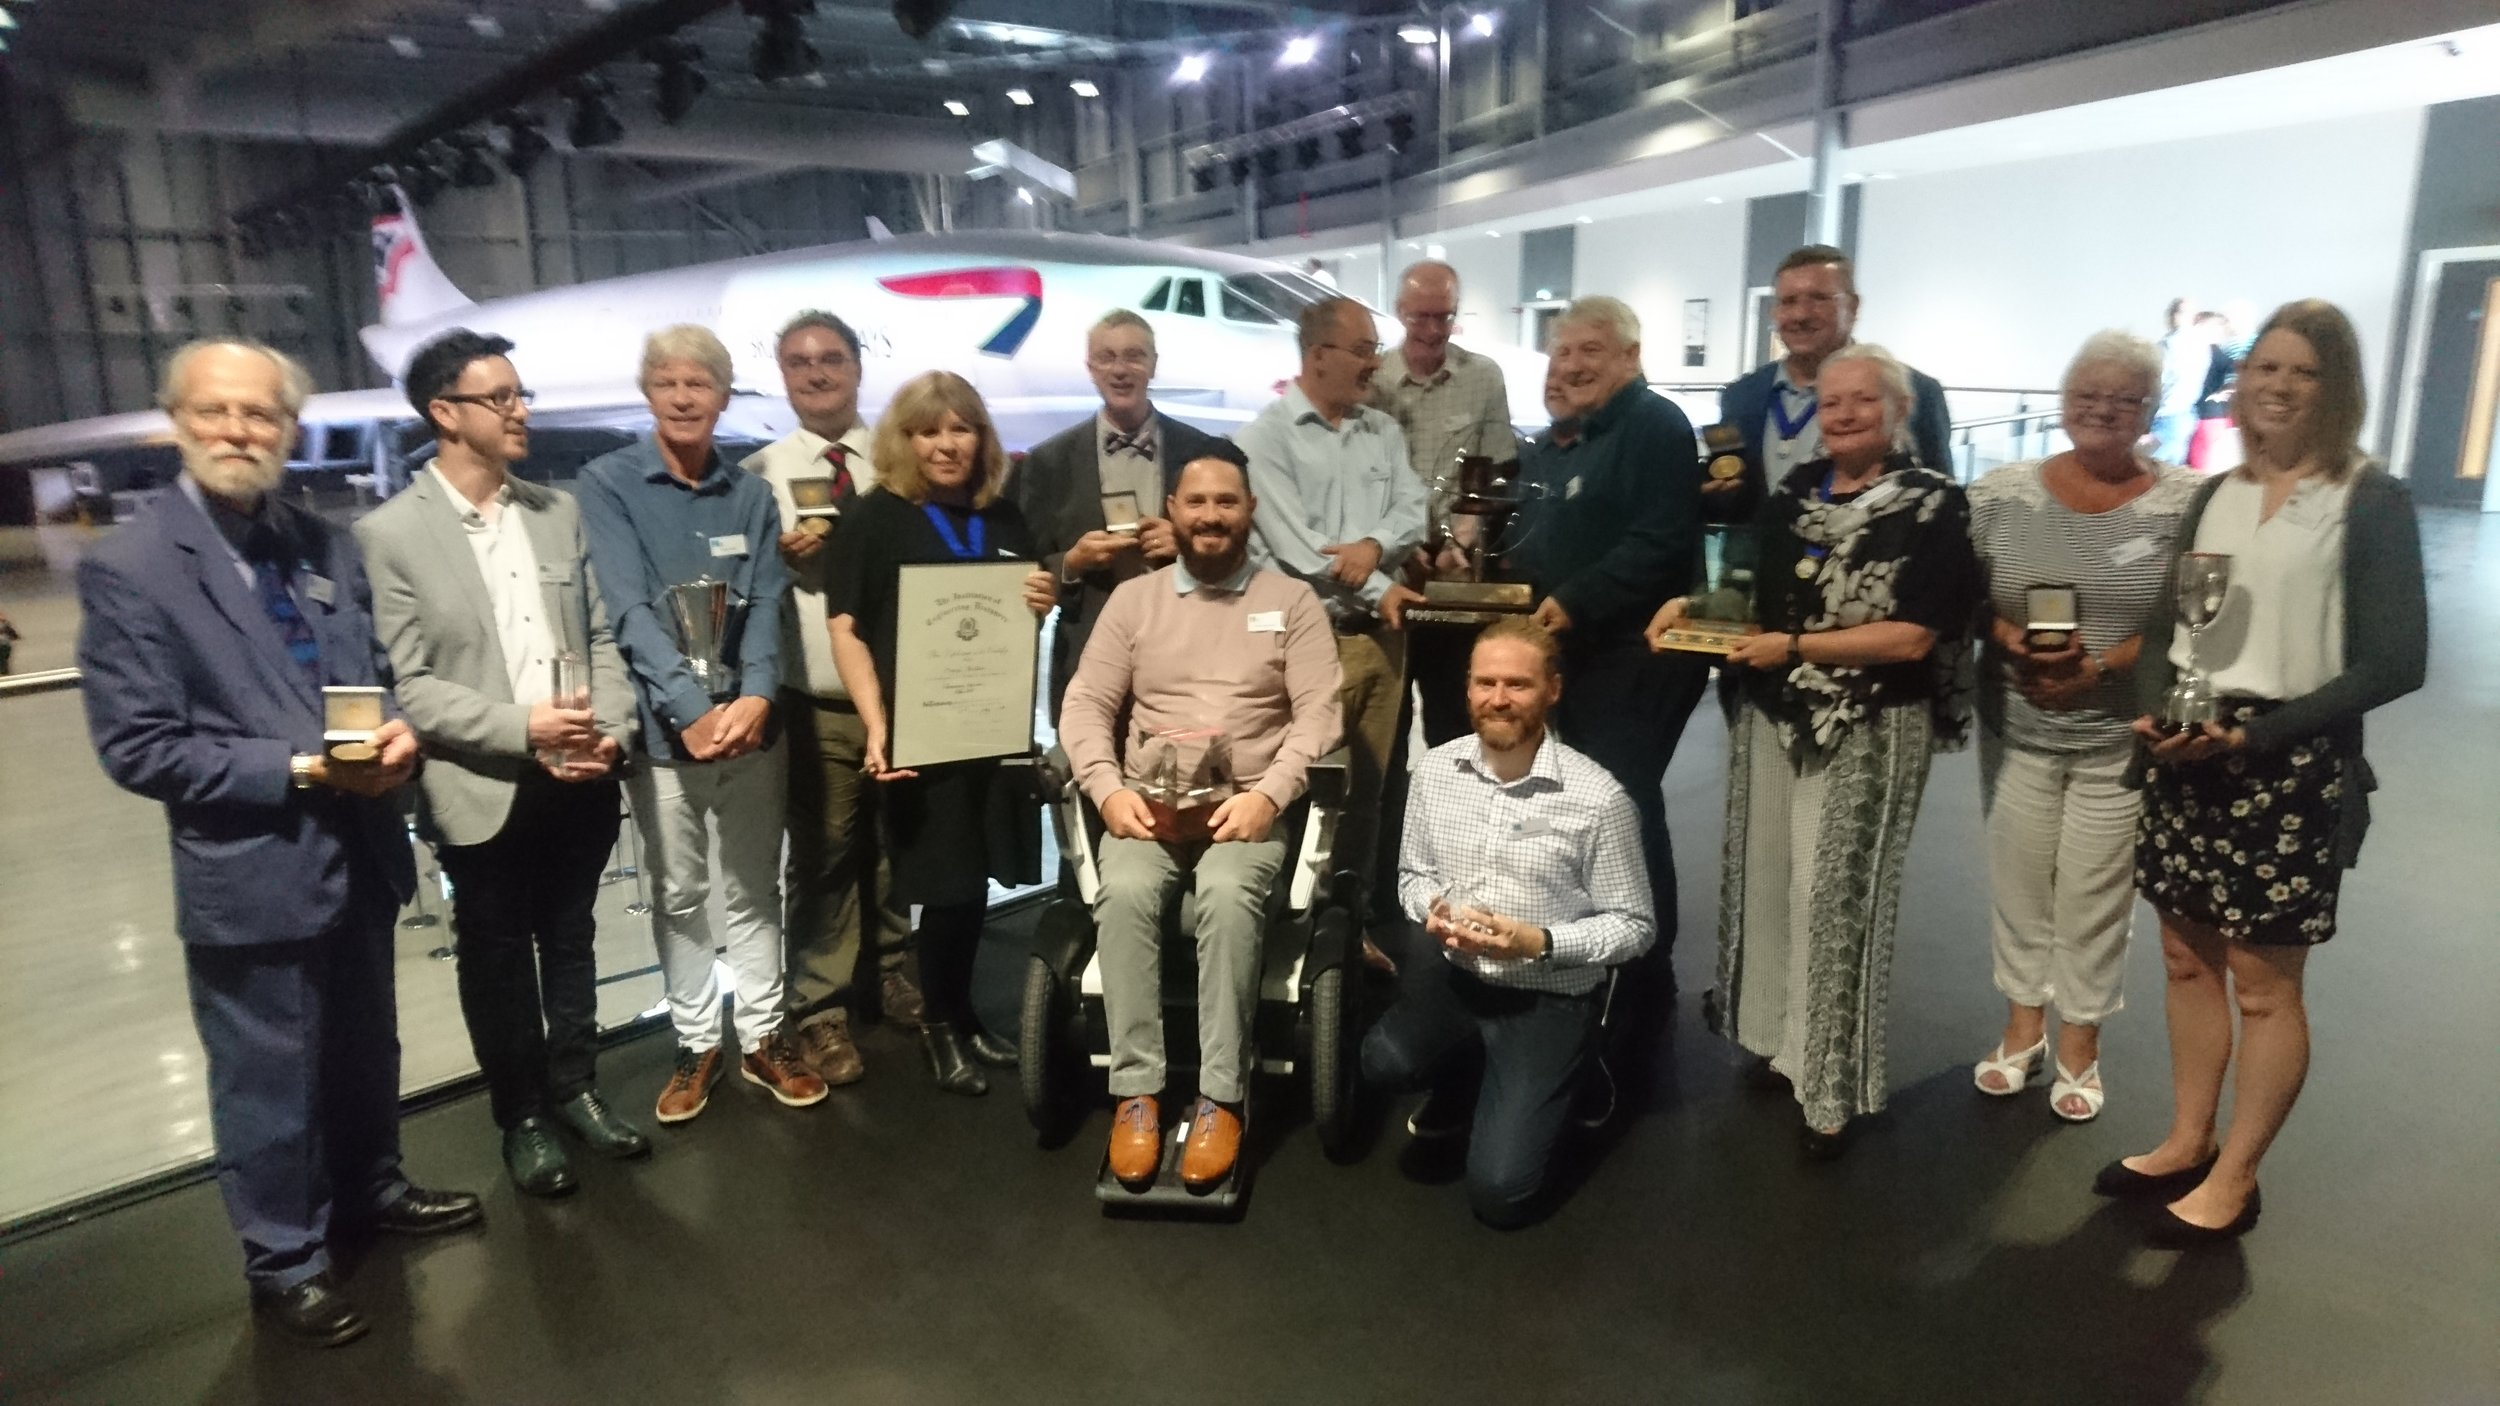 Phil Eaglesham, winner of the Alex Moulton Award 2018, with other IED Award Winners at Aerospace Bristol.